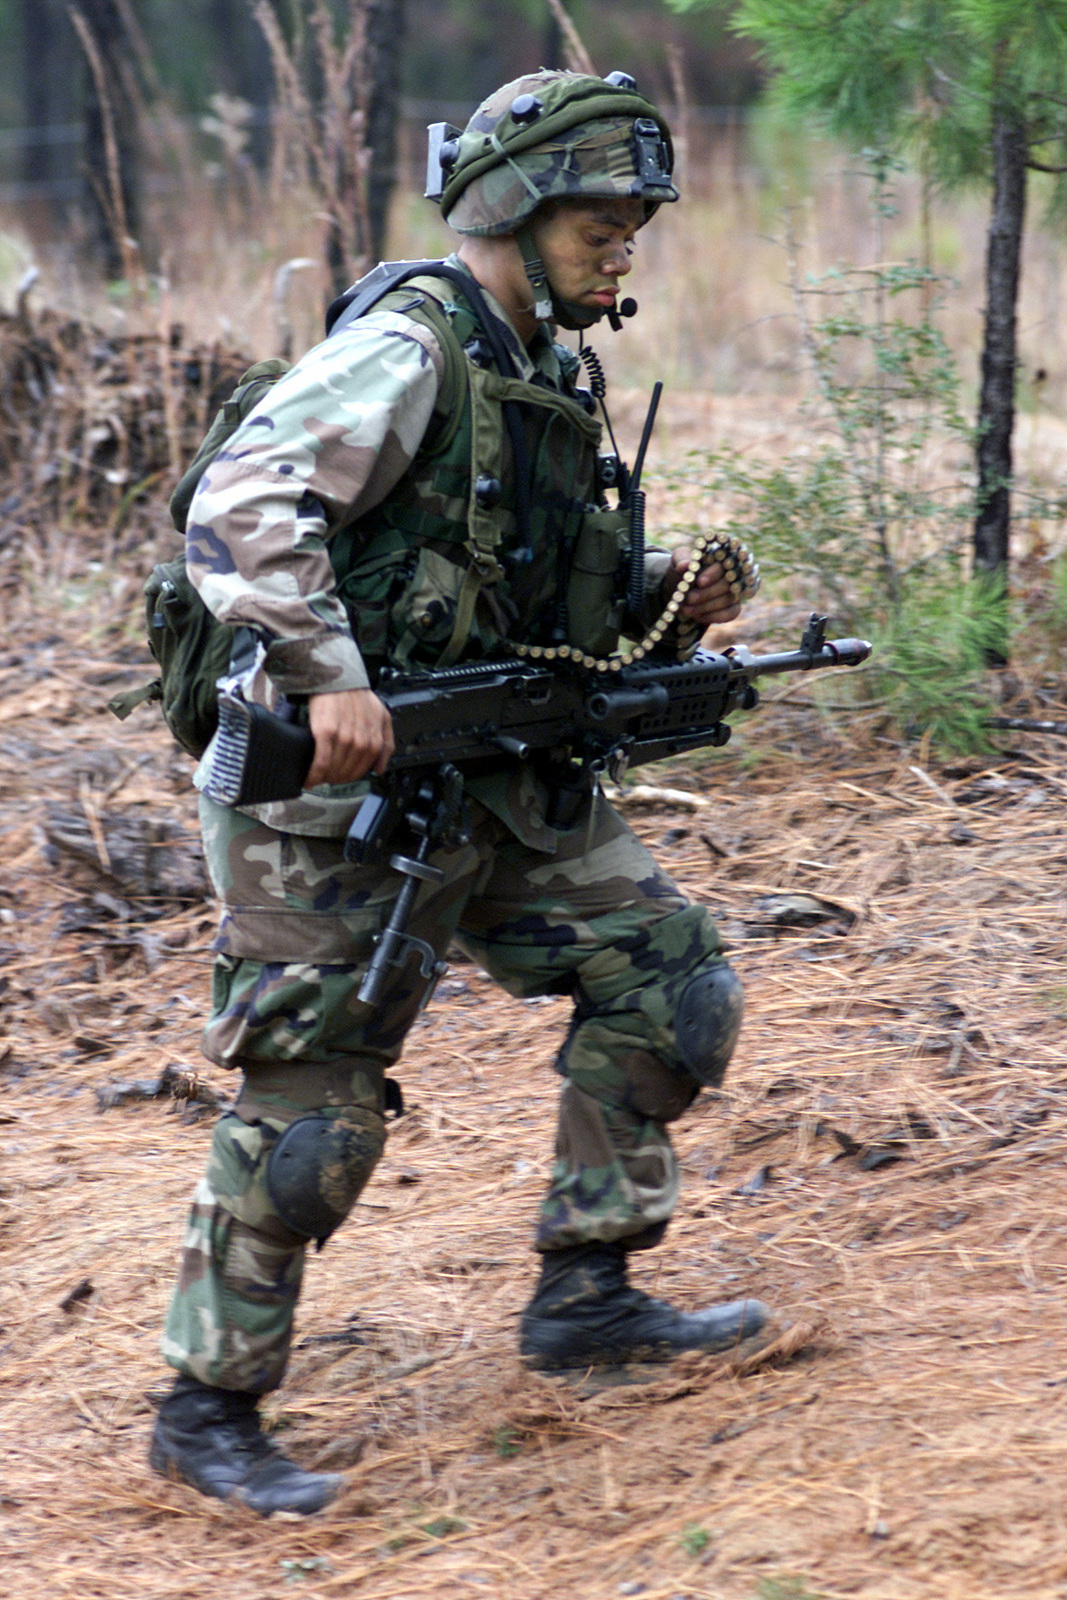 A US Army (USA) 25th Infantry Division (Light) Soldier wears